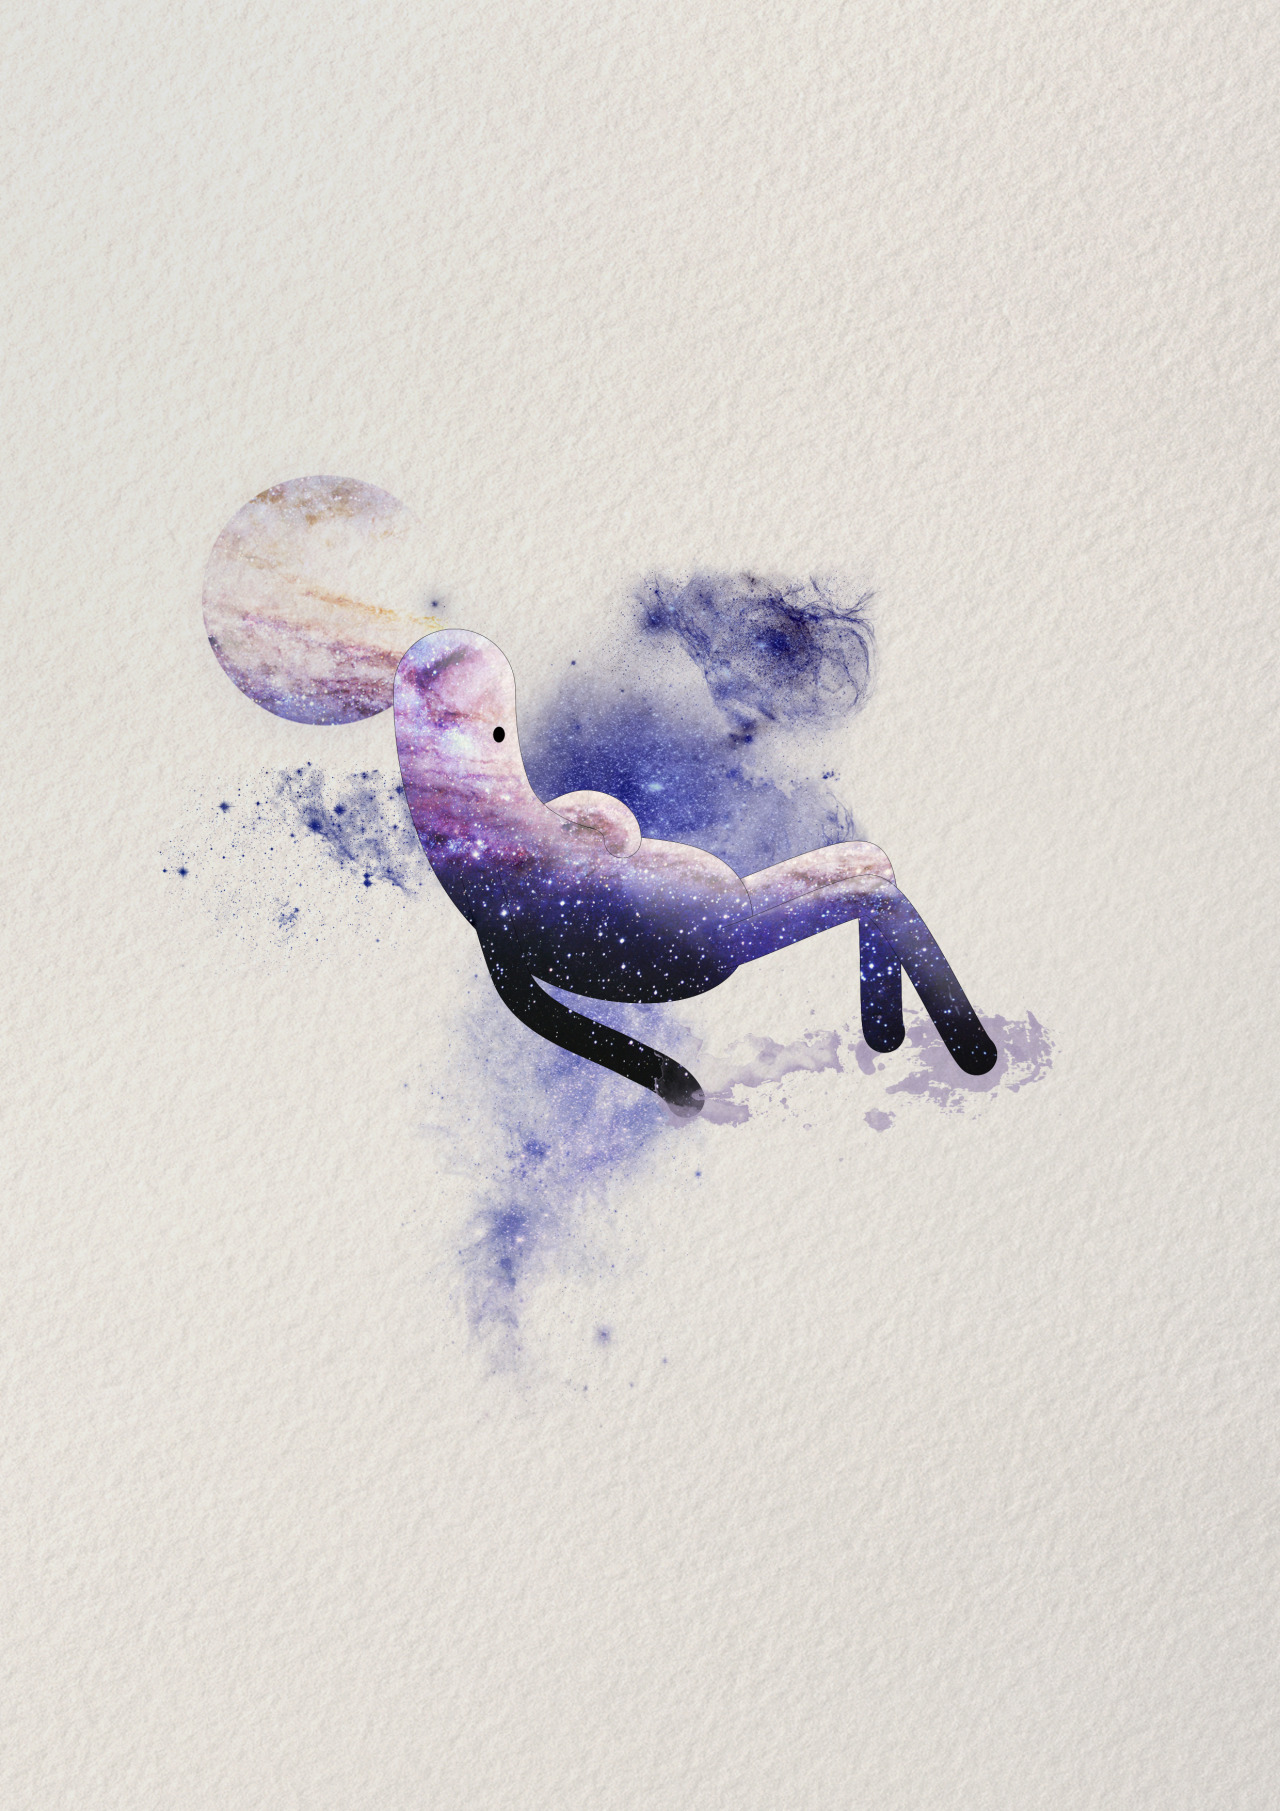 Digital art selected for the Daily Inspiration #2240